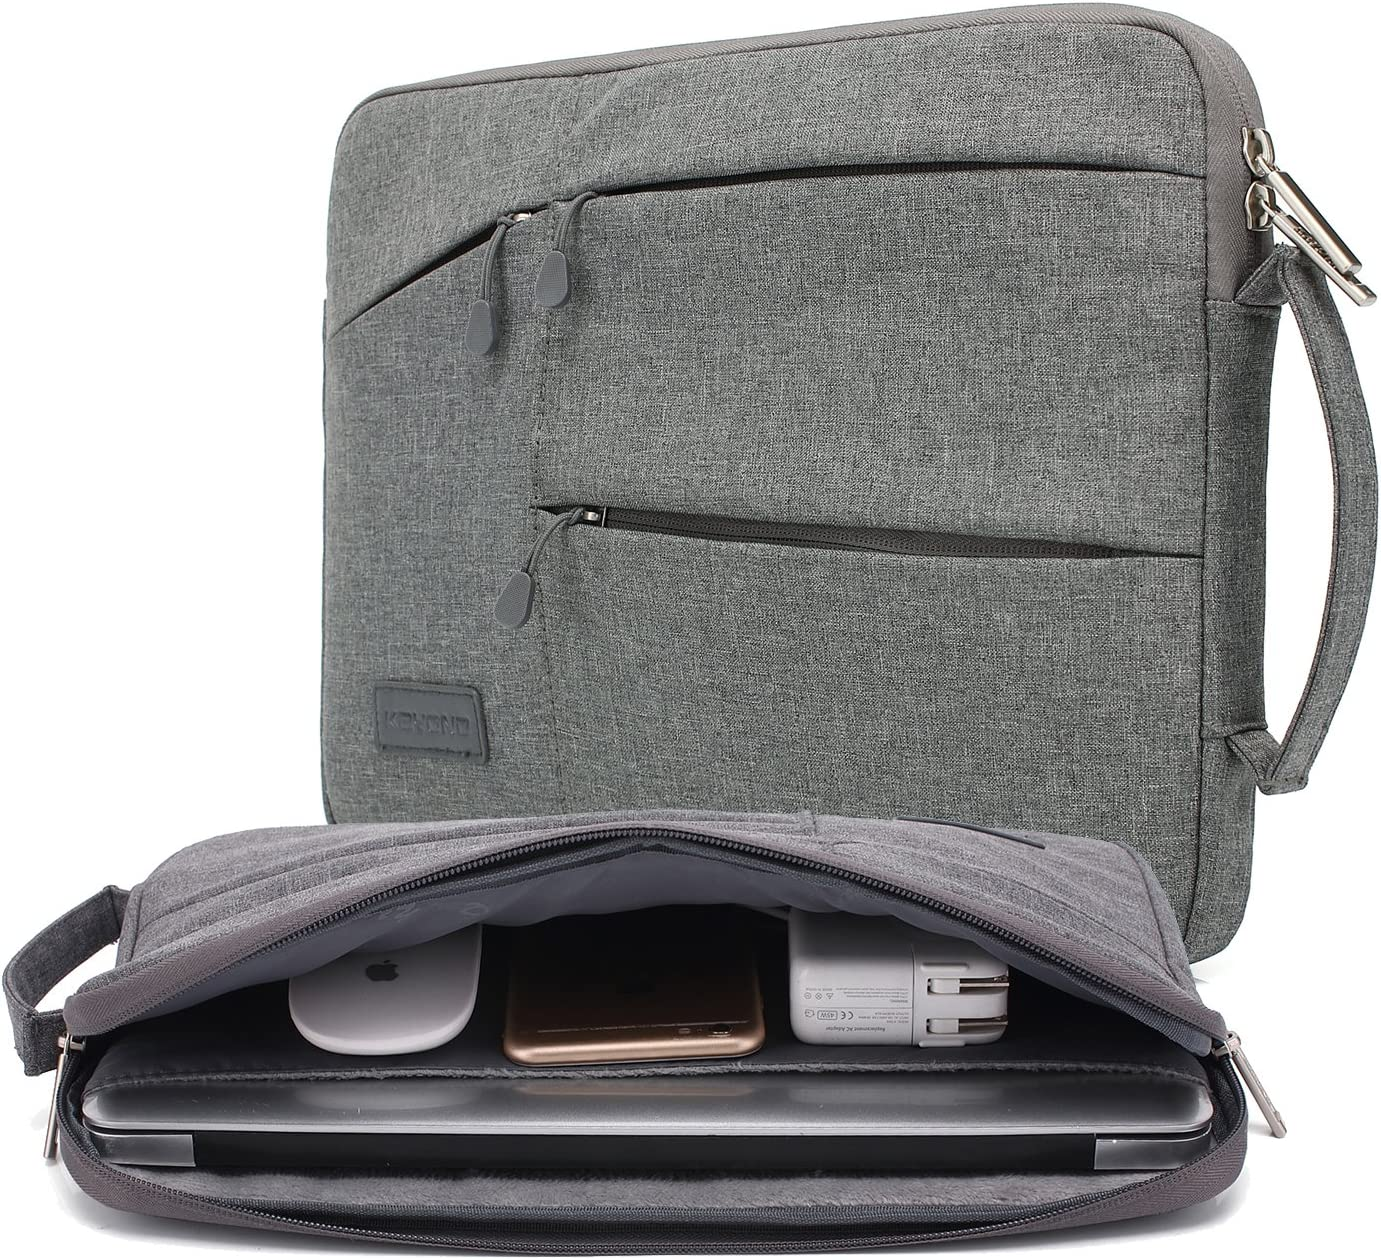 kayond Nylon Fabric 13.3 Inch Laptop Sleeve-Gray